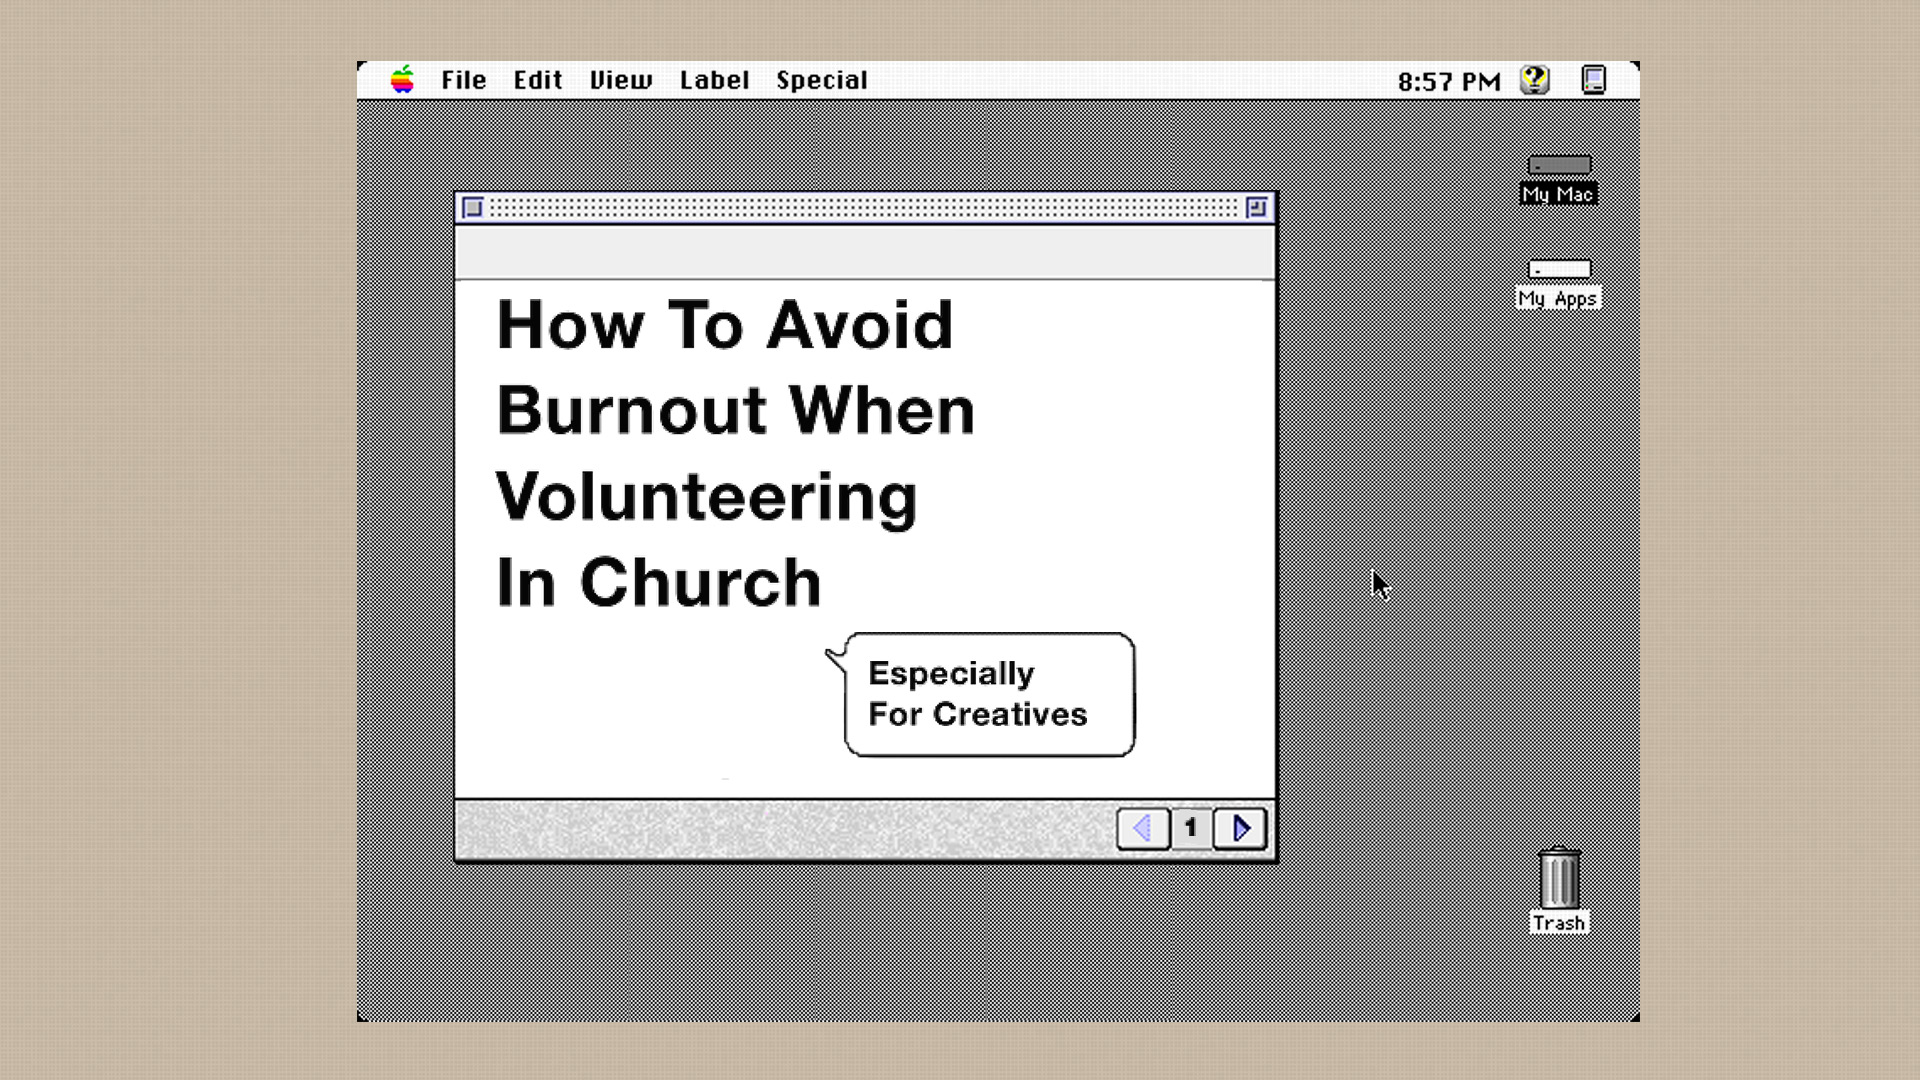 How to avoid burnout when volunteering in church (especially for creatives)